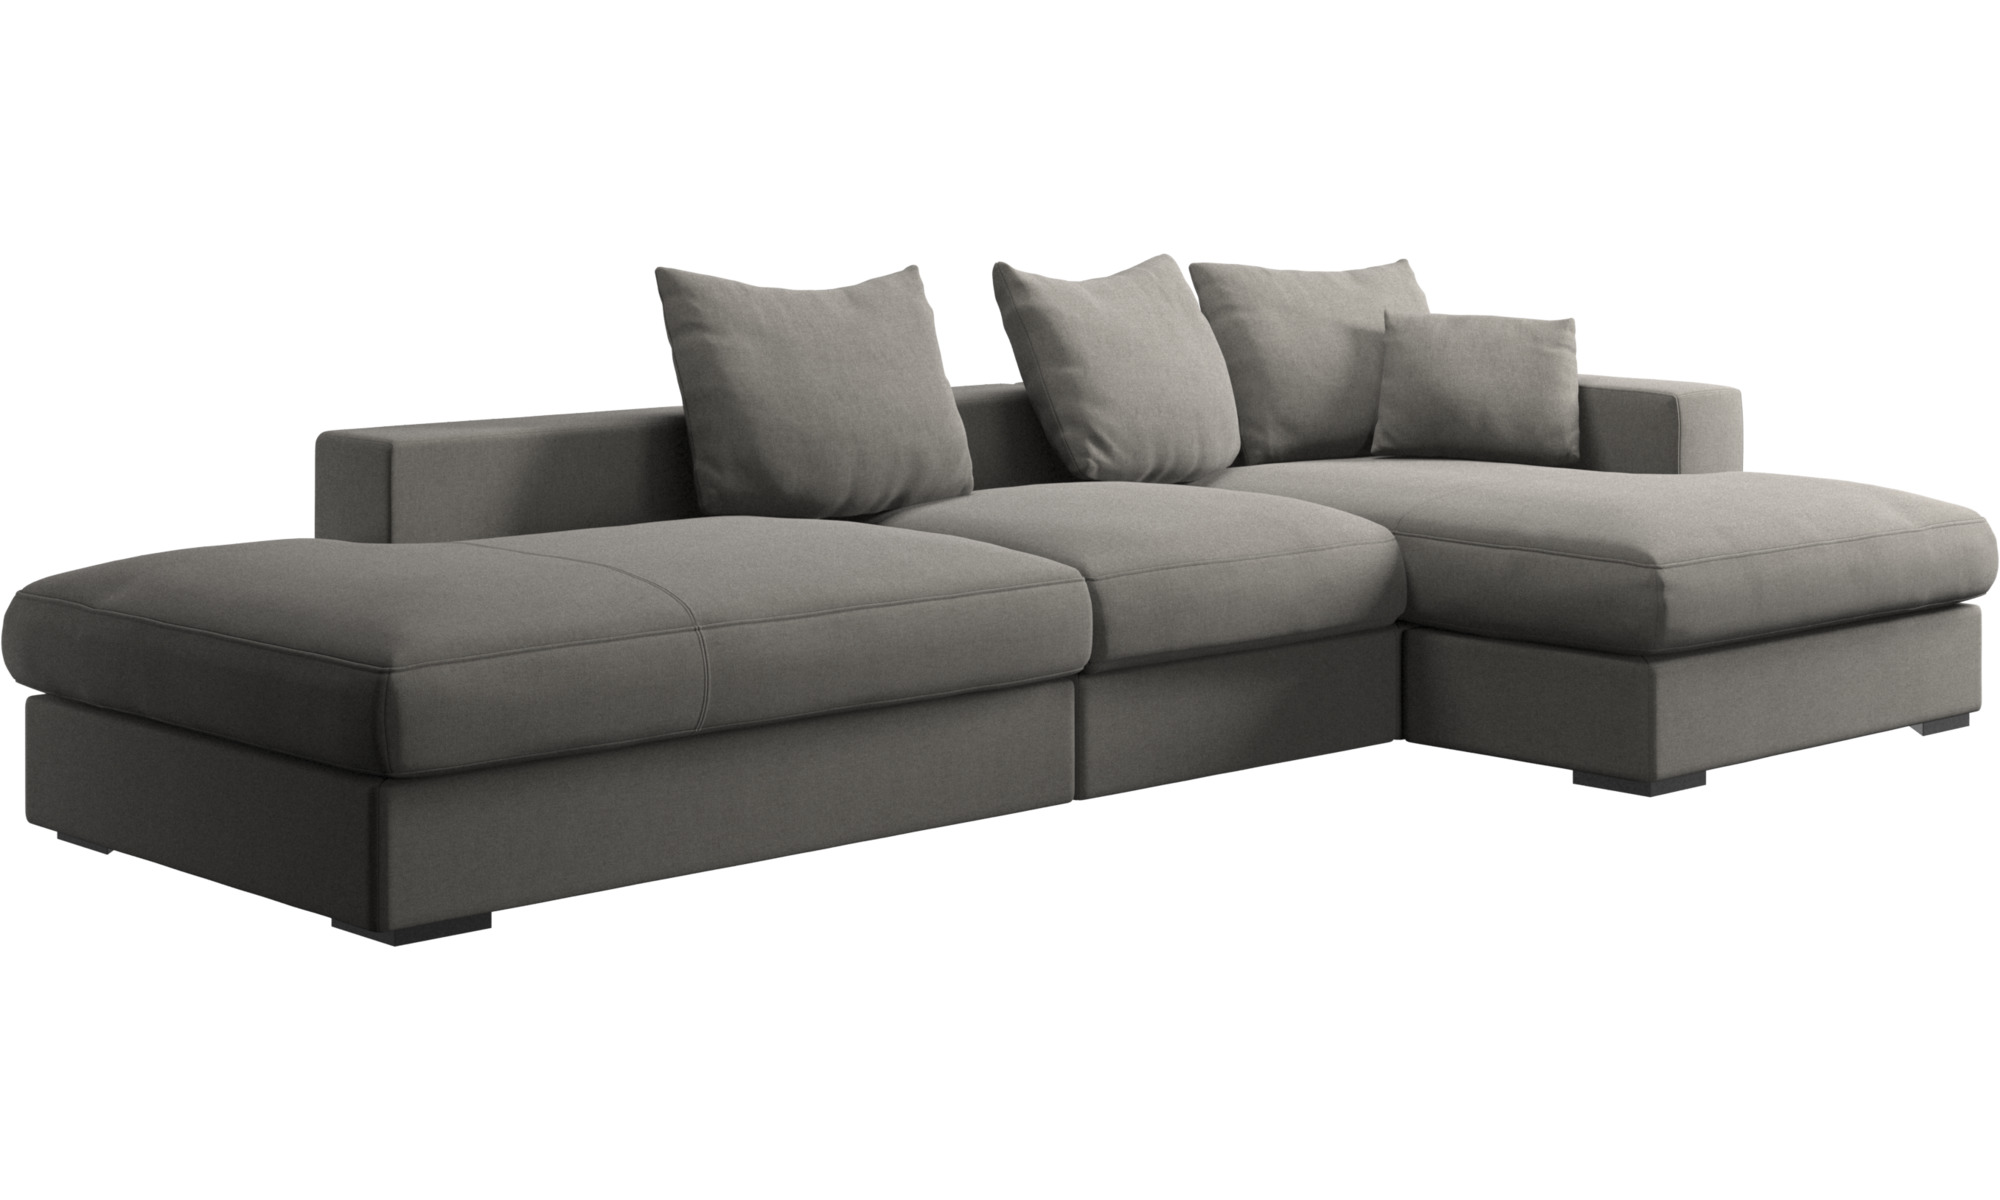 3 sitzer sofas cenova sofa mit lounge und ruhemodul boconcept. Black Bedroom Furniture Sets. Home Design Ideas